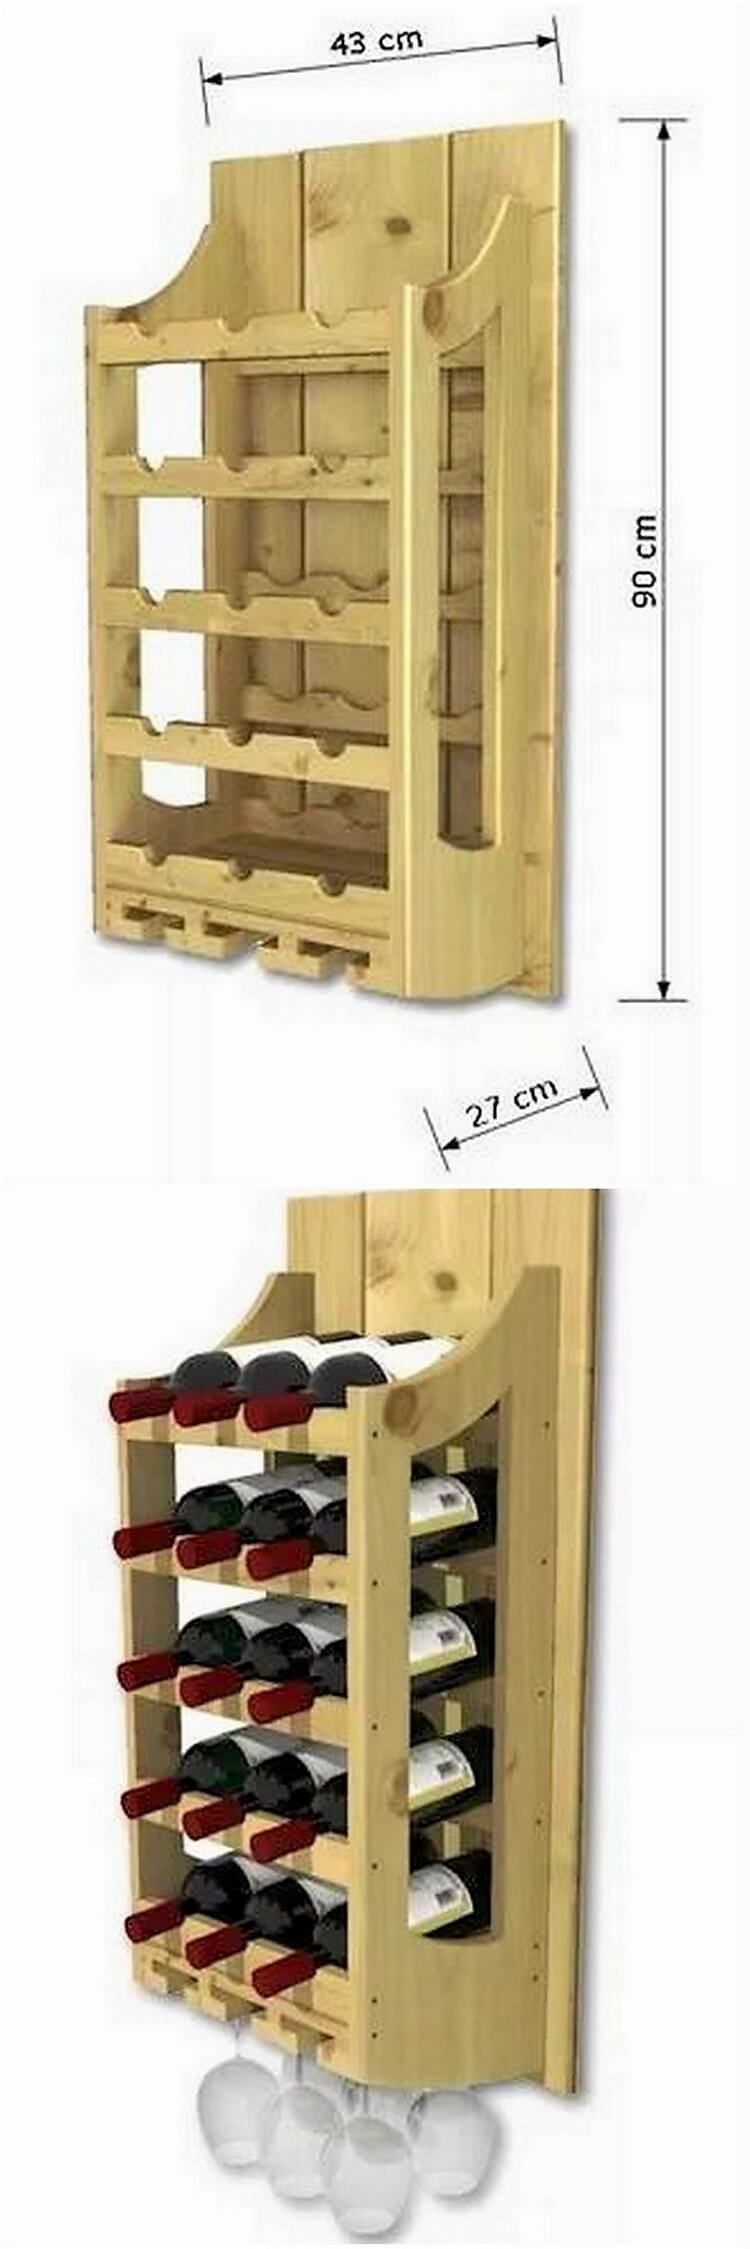 Interesting DIY Wood Pallet Projects and Ideas | Wine rack design ...